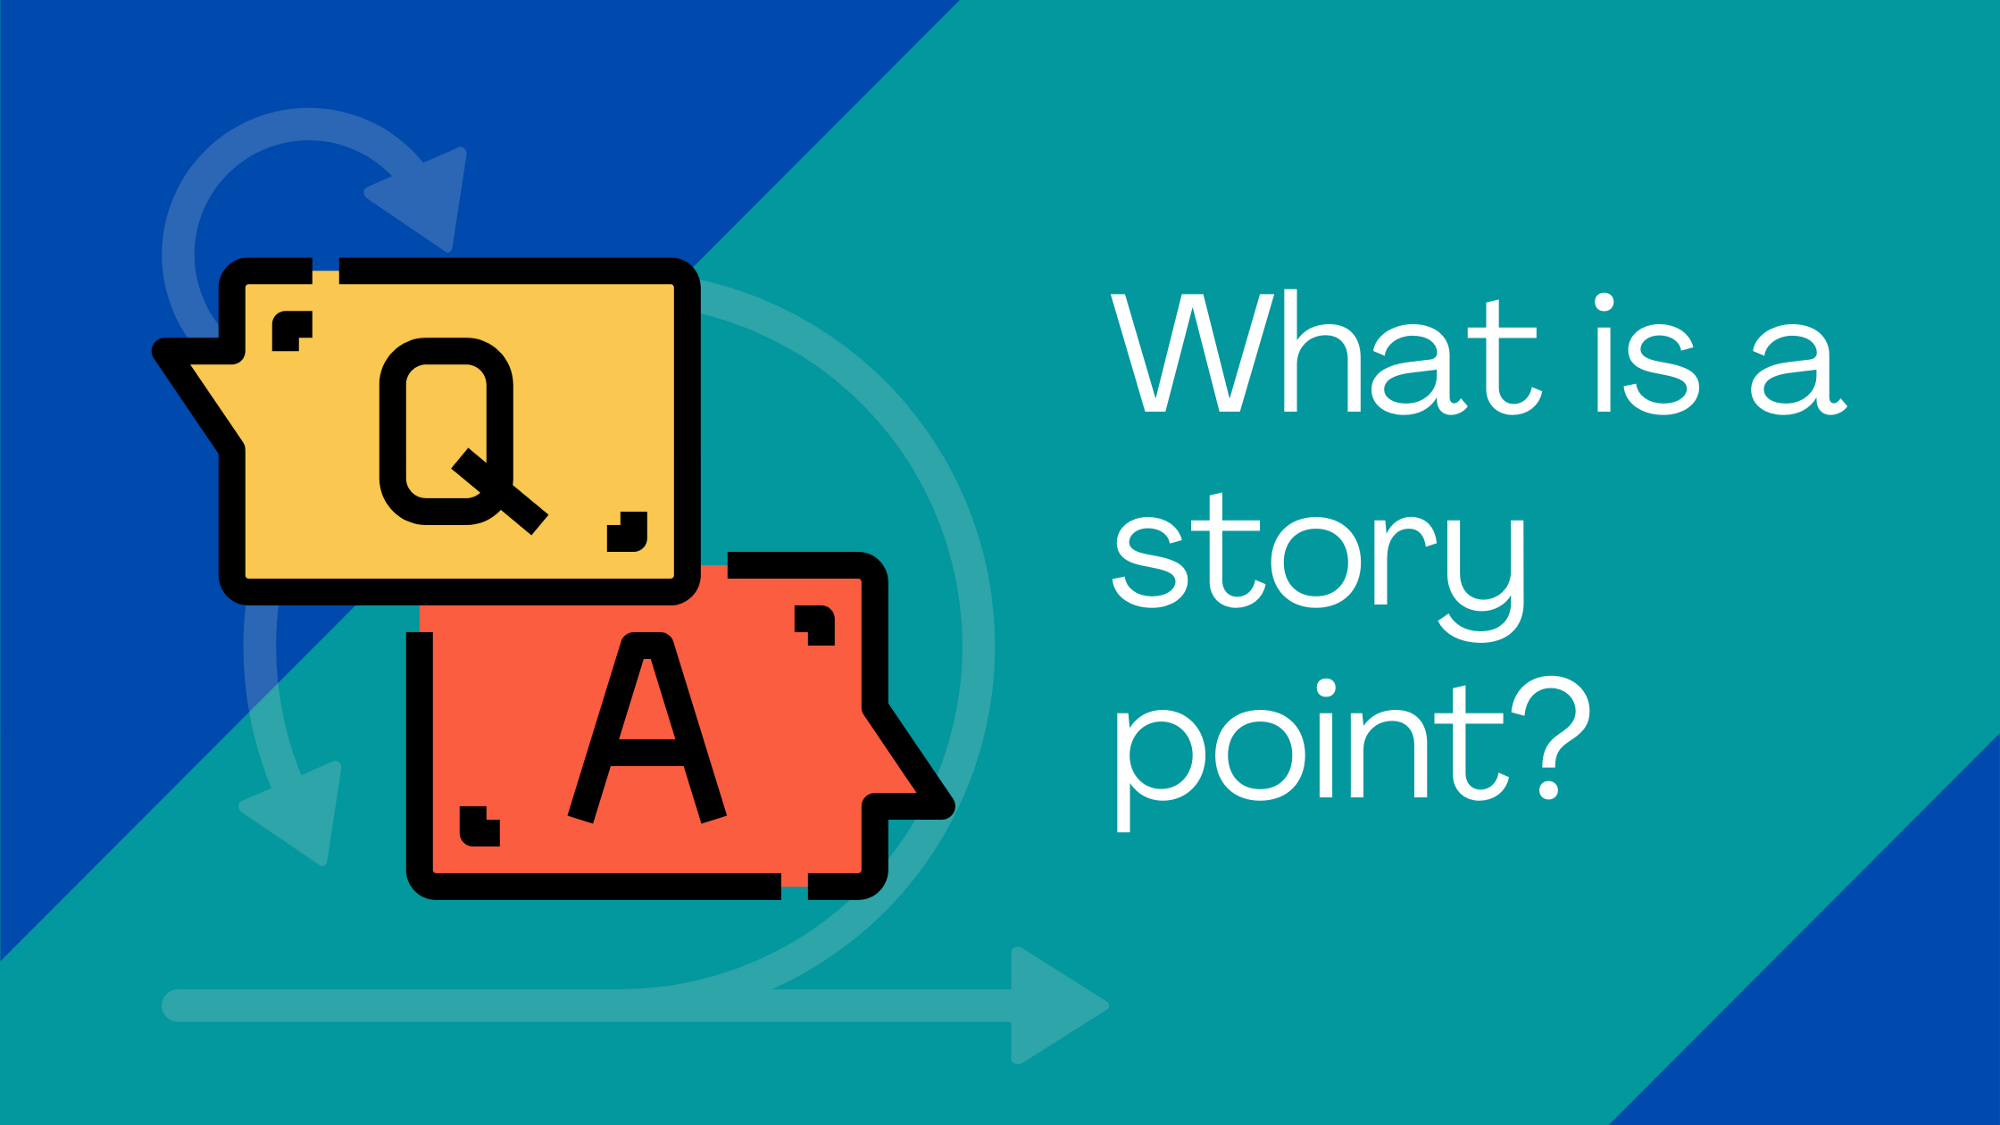 What is a story point?